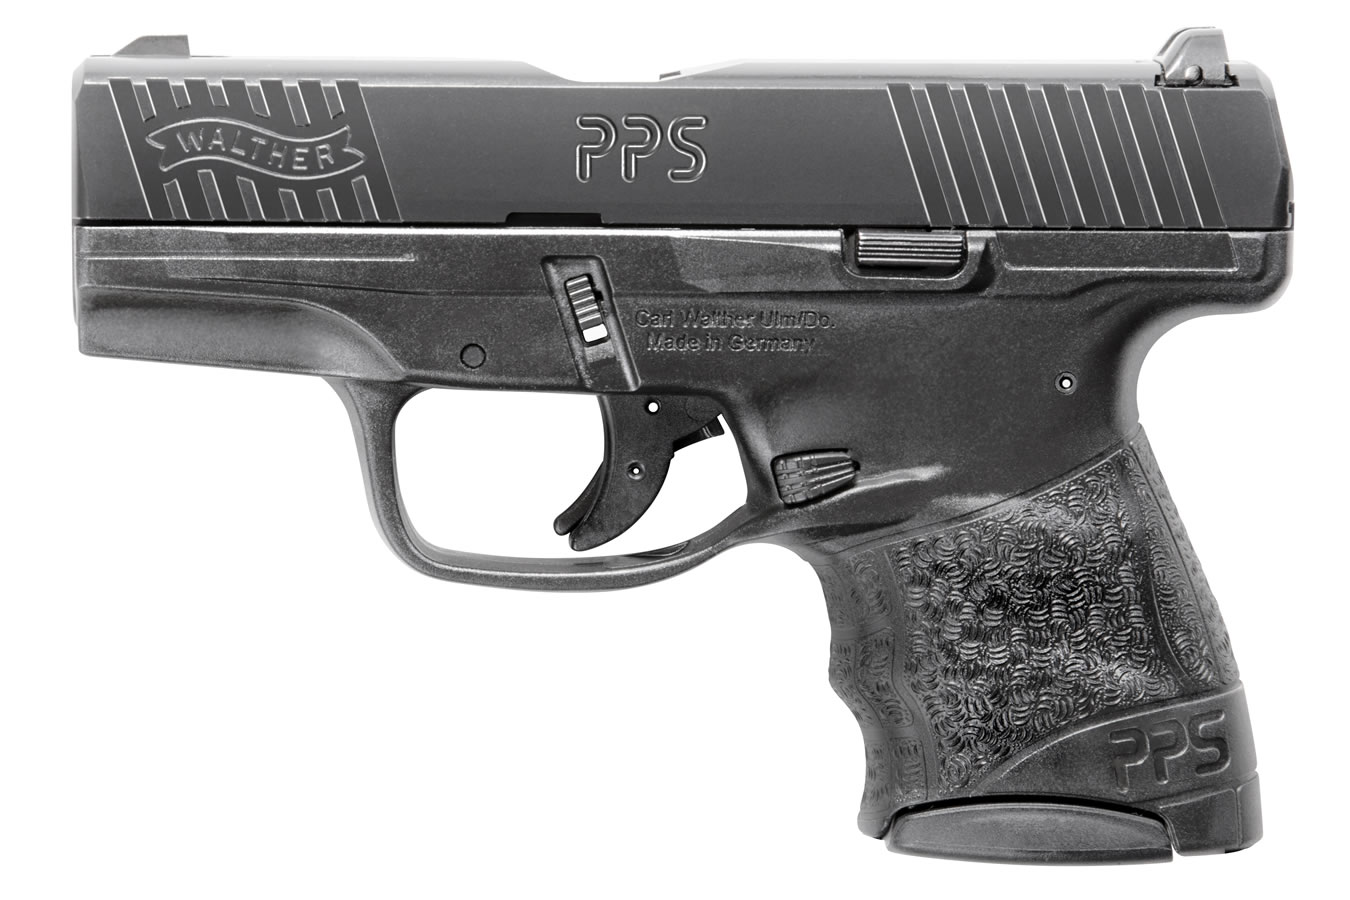 PPS M2 9X19 LE EDITION PS NIGHT SIGHTS